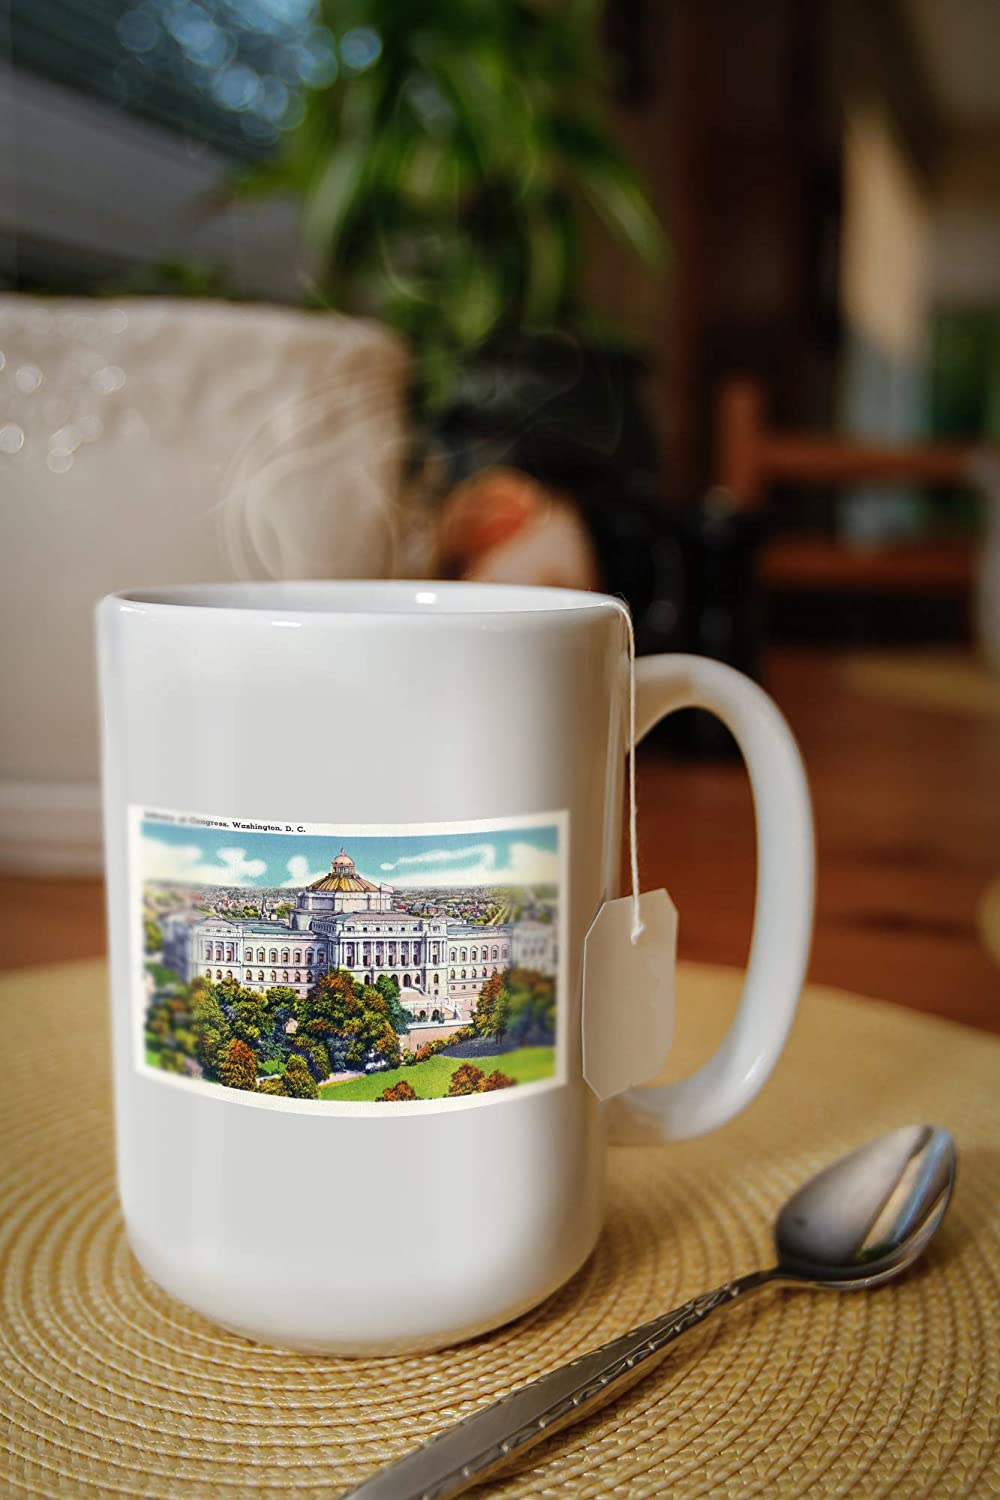 Washington Dc Exterior View Of The Library Of Congress 15oz White Ceramic Mug Posters Prints